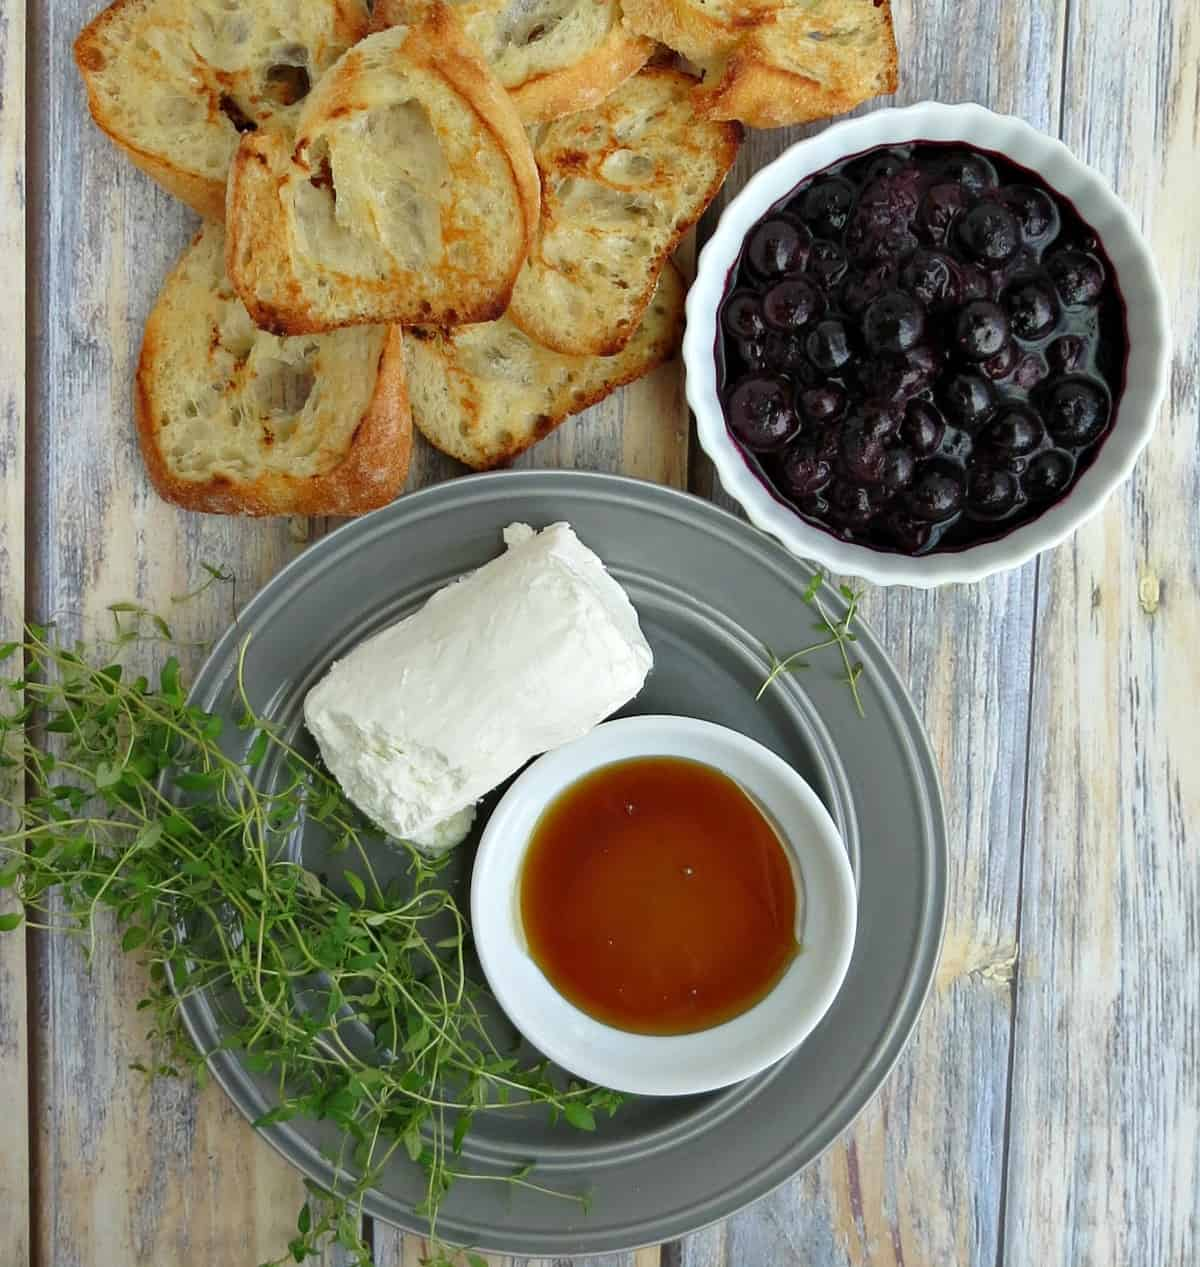 Blueberry and Goat Cheese Crostini Ingredients